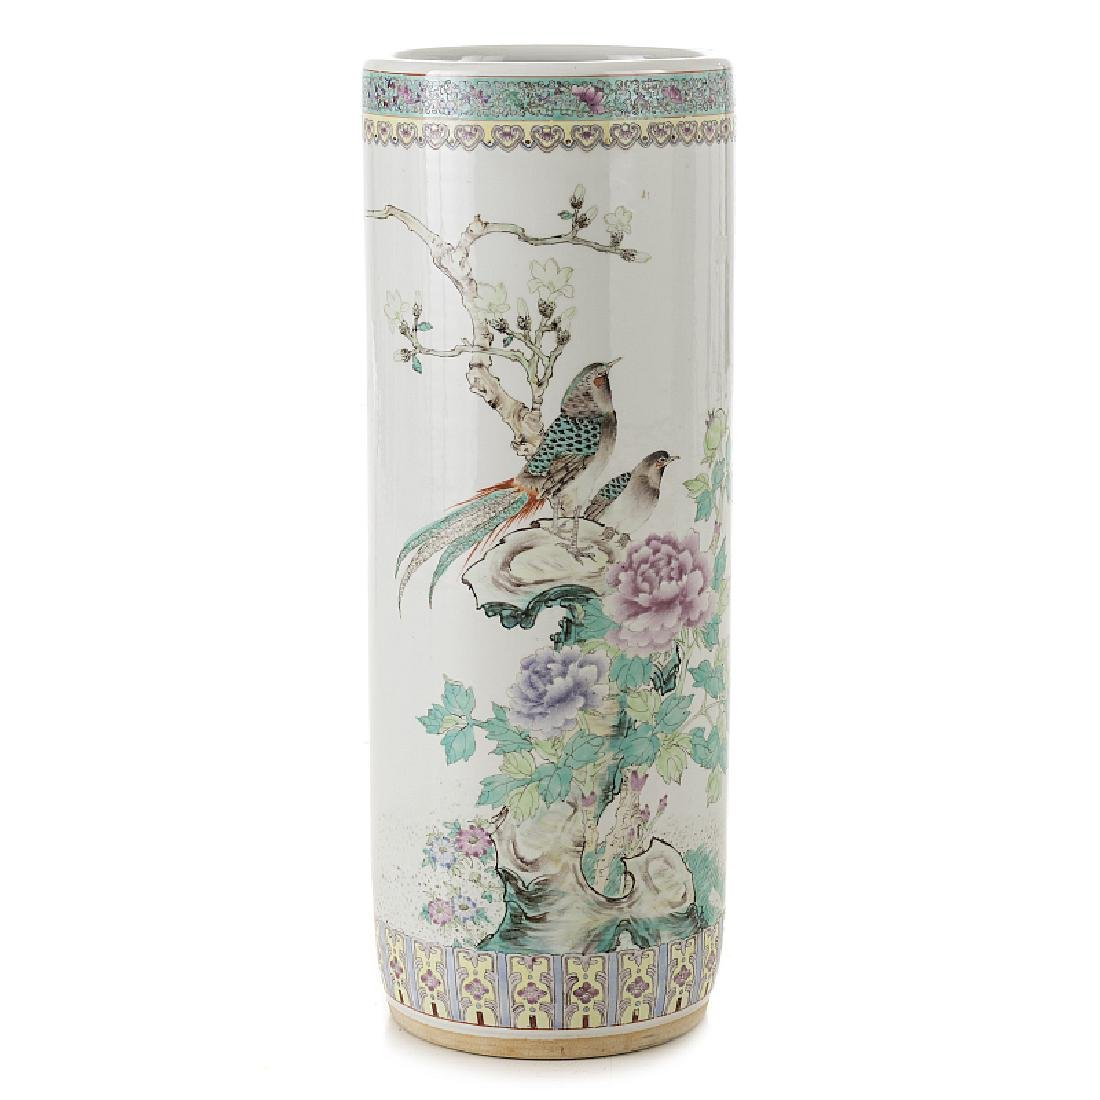 Umbrella holder in Chinese porcelain